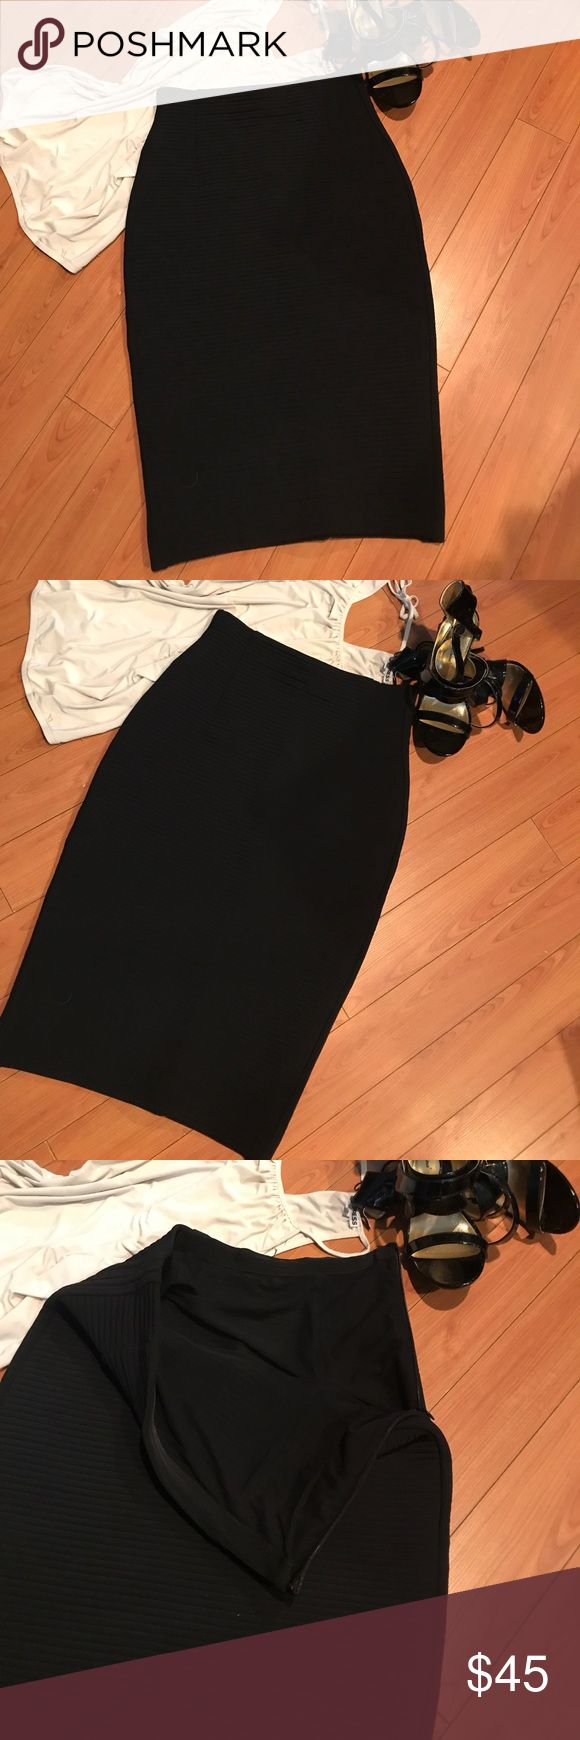 Beautiful Black BodyCon Skirt This is a beautiful bodycon skirt. The designer and size tags are gone but measurements indicate a 10-12. This came from a lot of mannequin samples and returns from Nordstrom. I am 99.9% sure this is from Parker, but no tags. So price reflects. It's a beautifully made and cut skirt of excellent quality. See photos for measurements. made in NYC and has tons of stretch. It's a dense fabric and is fully lined. This would not be a lightweight summer option. Parker…